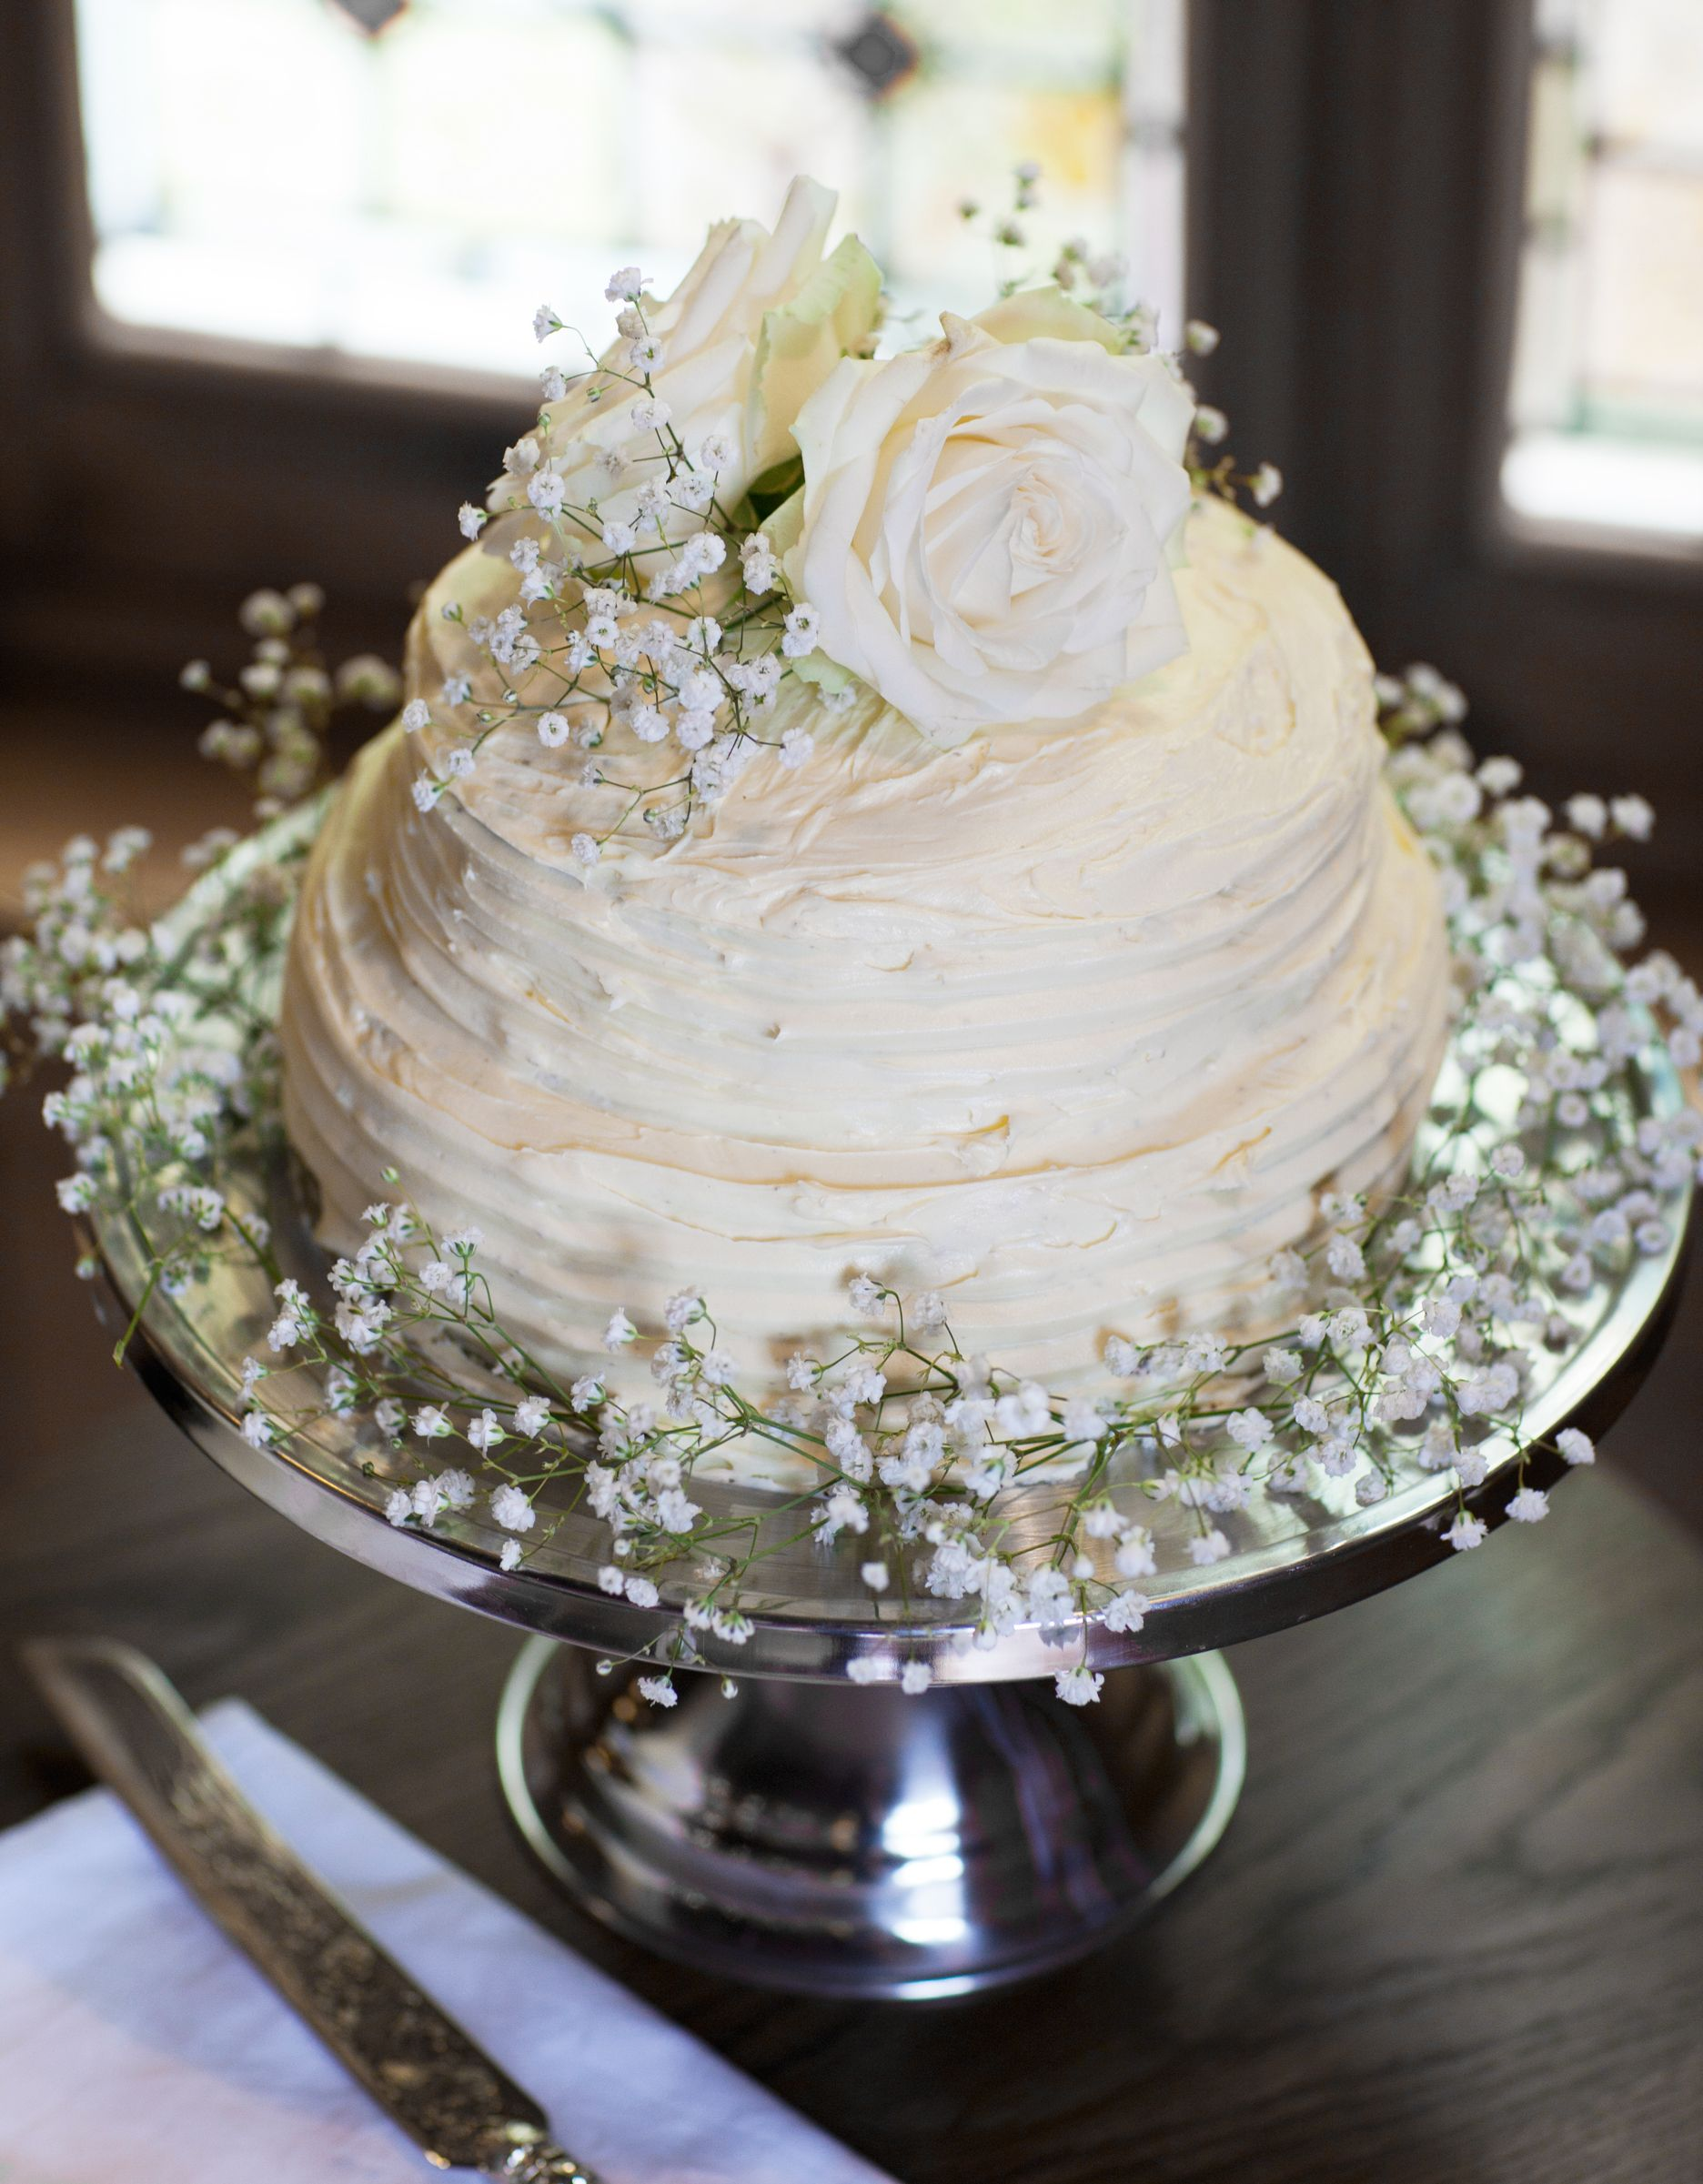 Homemade Wedding Cake.Homemade Wedding Cake With Vanilla Buttercream Icing My Pinterest